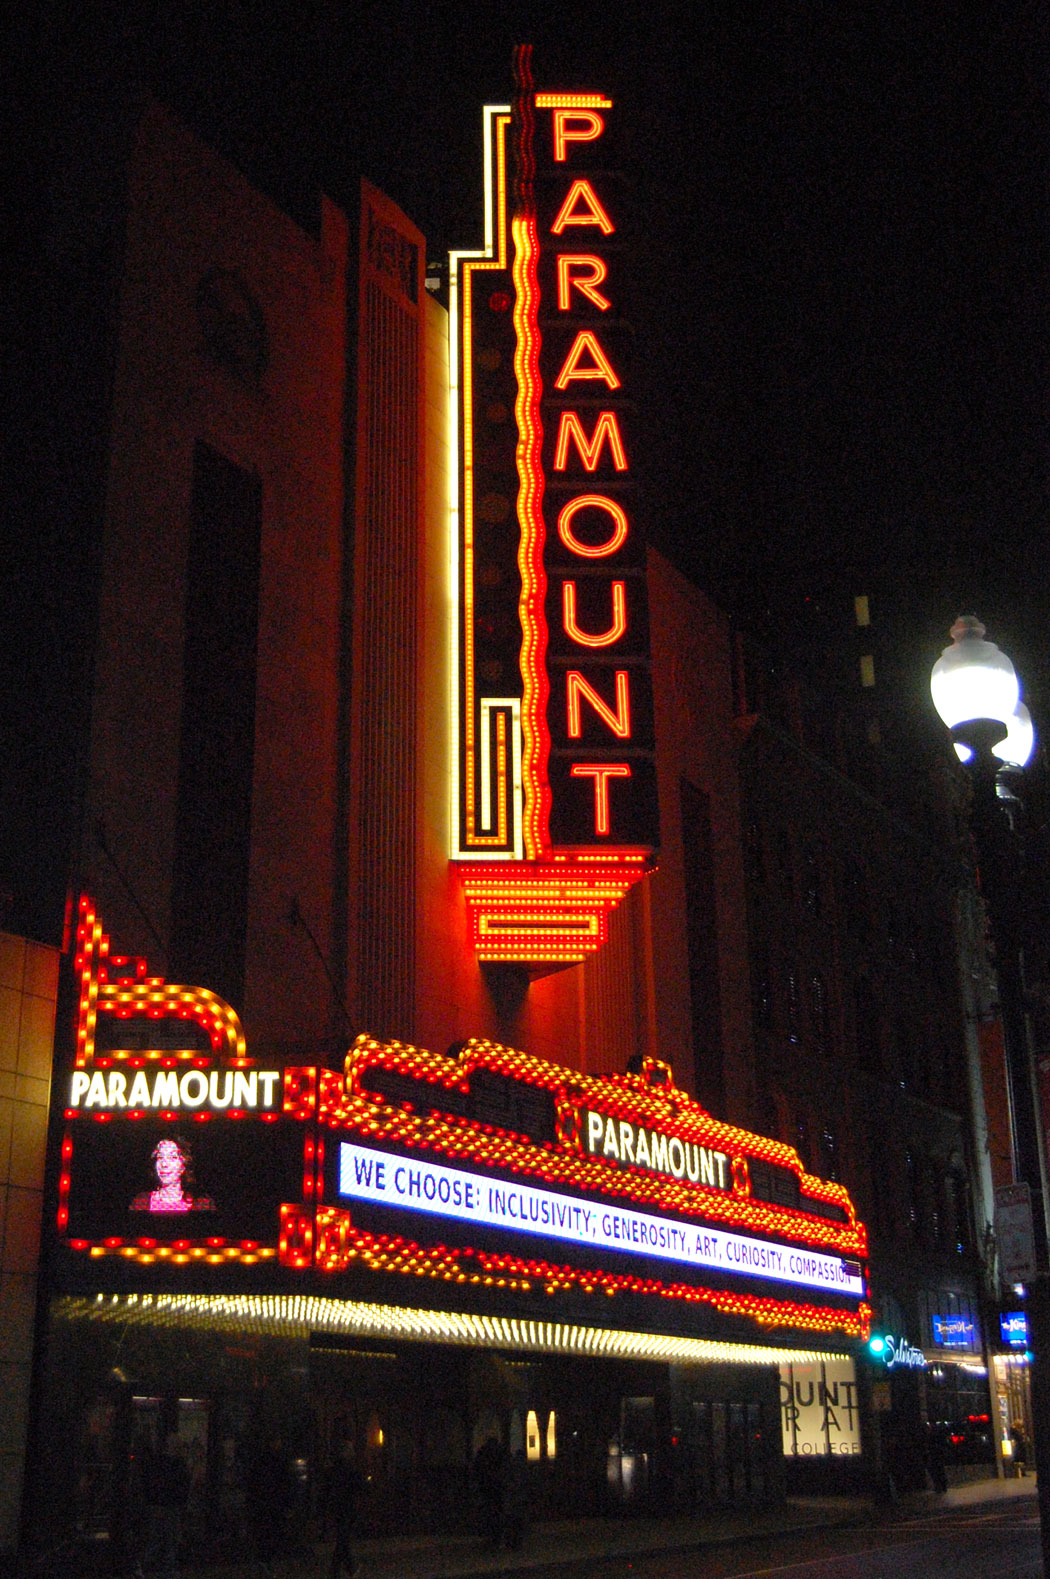 """We choose: Inclusivity, generosity, art, curiosity, compassion,"" reads Boston's Paramount Theater on Nov. 9, 2016, the night after Donald Trump was elected president. (Greg Cook)"